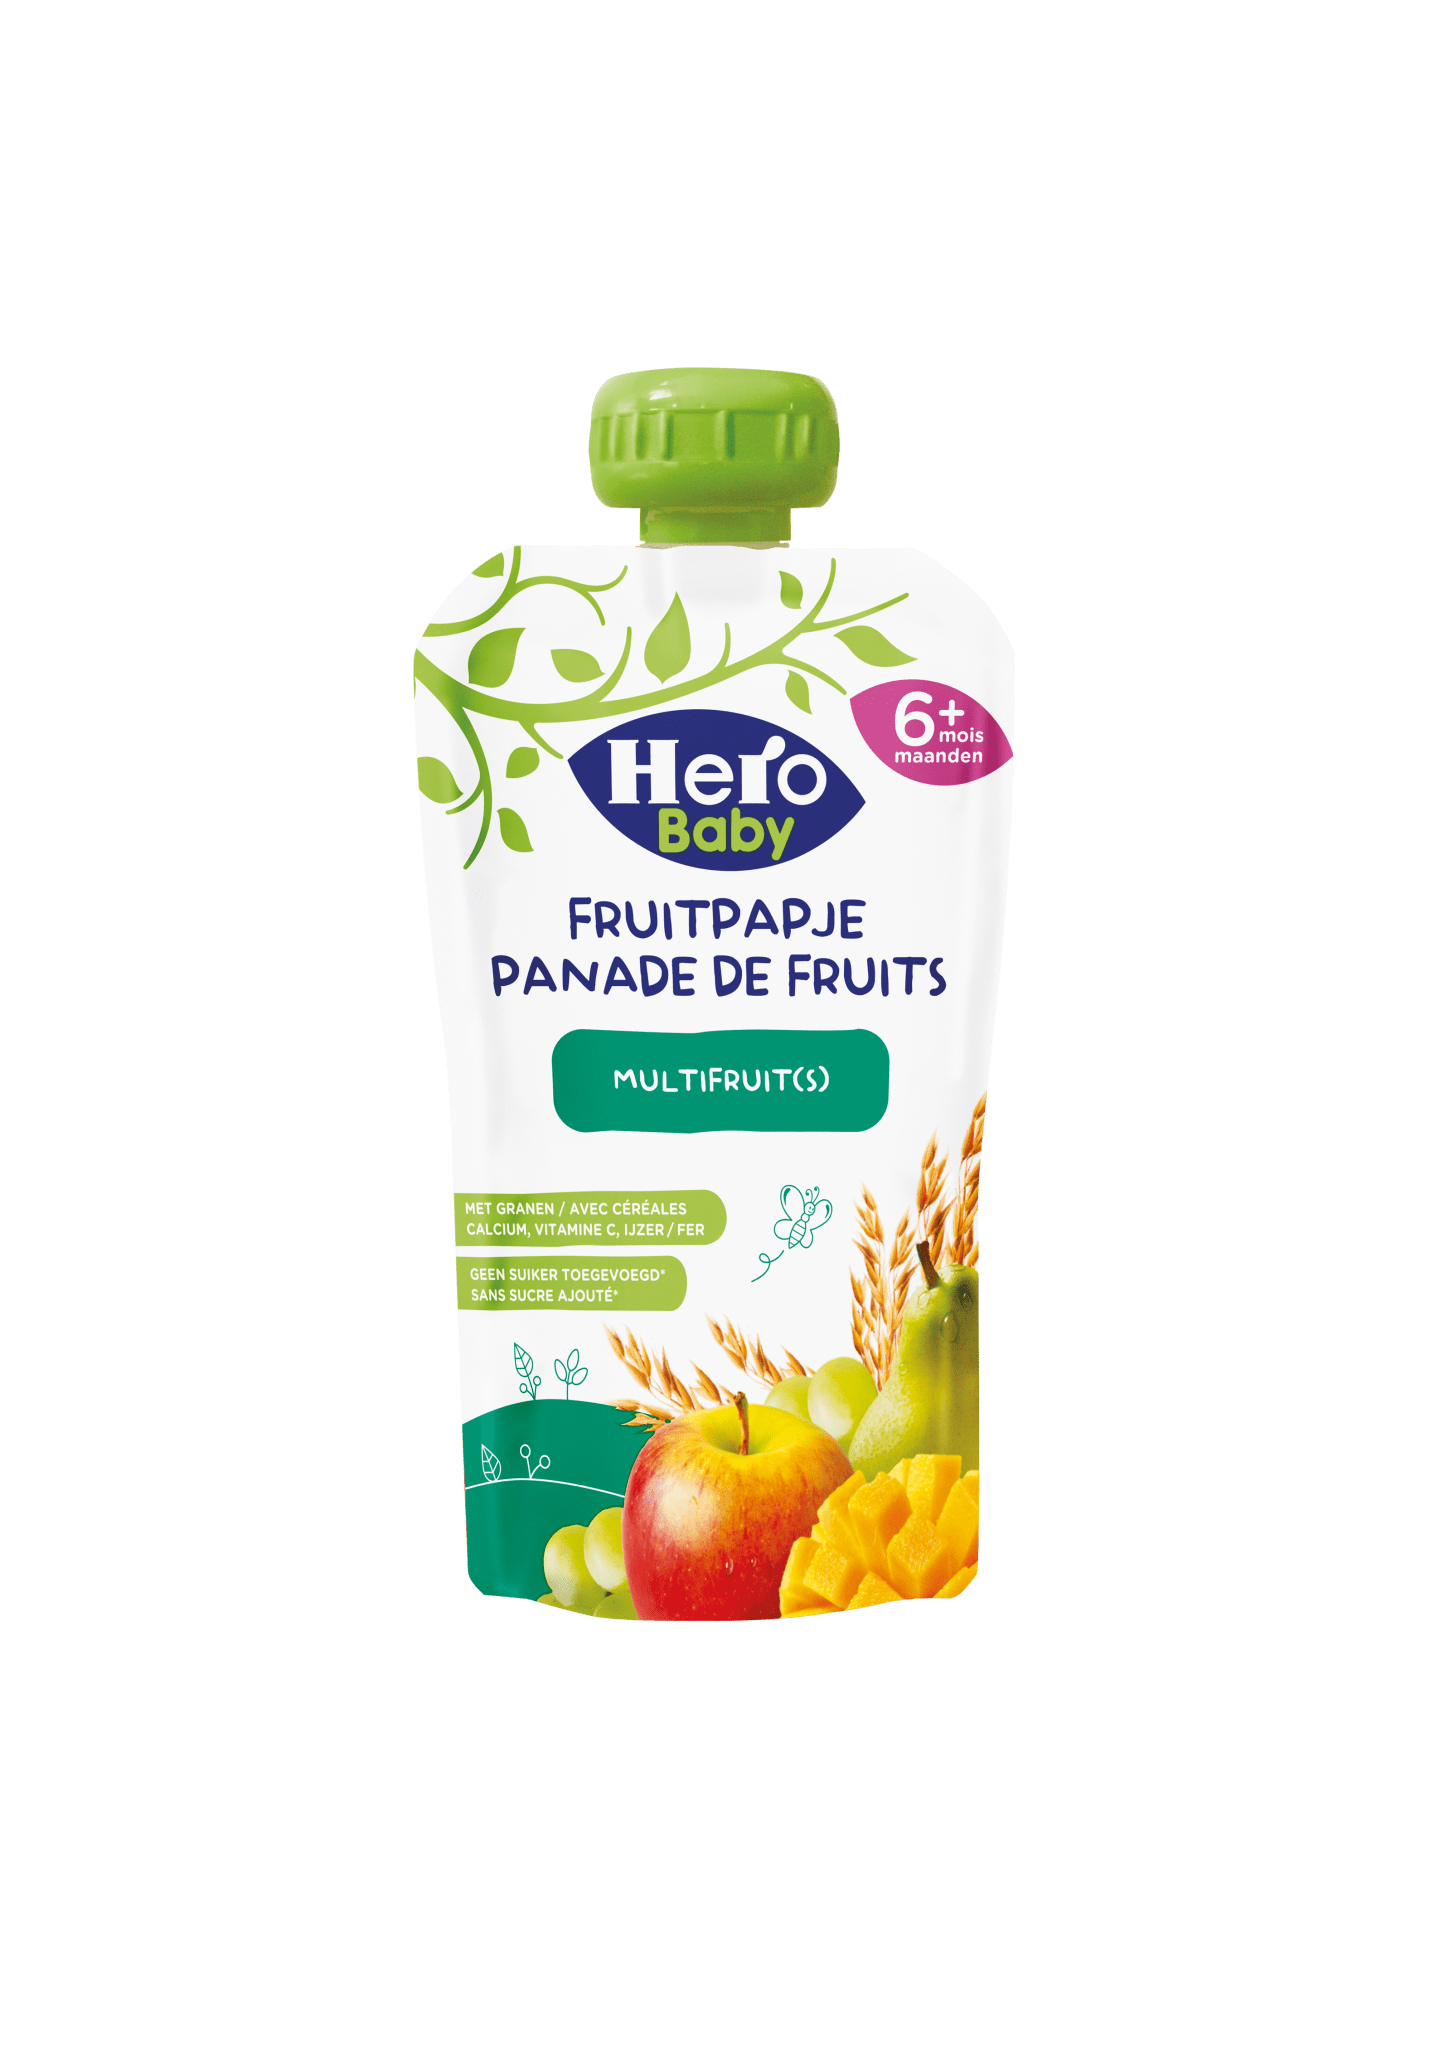 Hero Baby Fruitpapje met Granen Multifruit